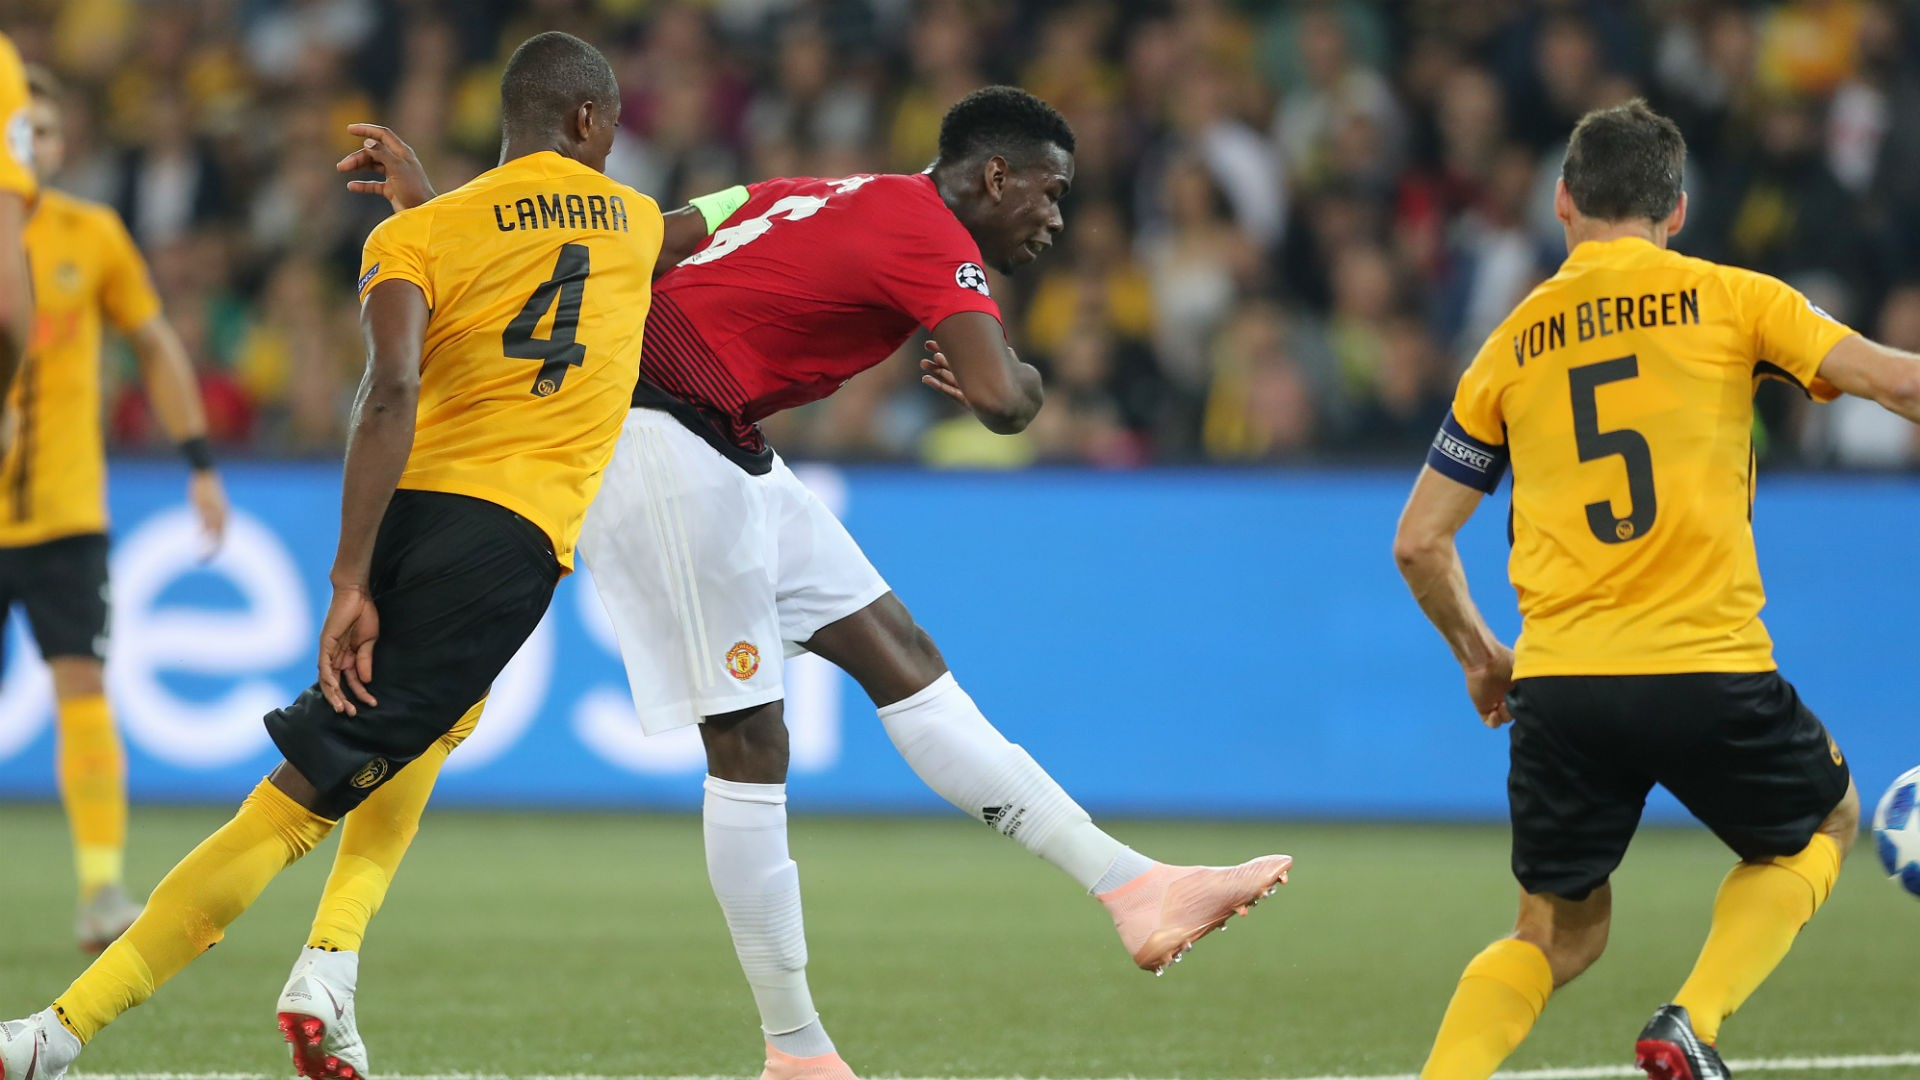 paul pogba cropped 1c0ob0vjvfmh5157z8kc3kvkgw - Young Boys 0-3 Manchester United [UEFA Champions League Highlights] [Watch Video]